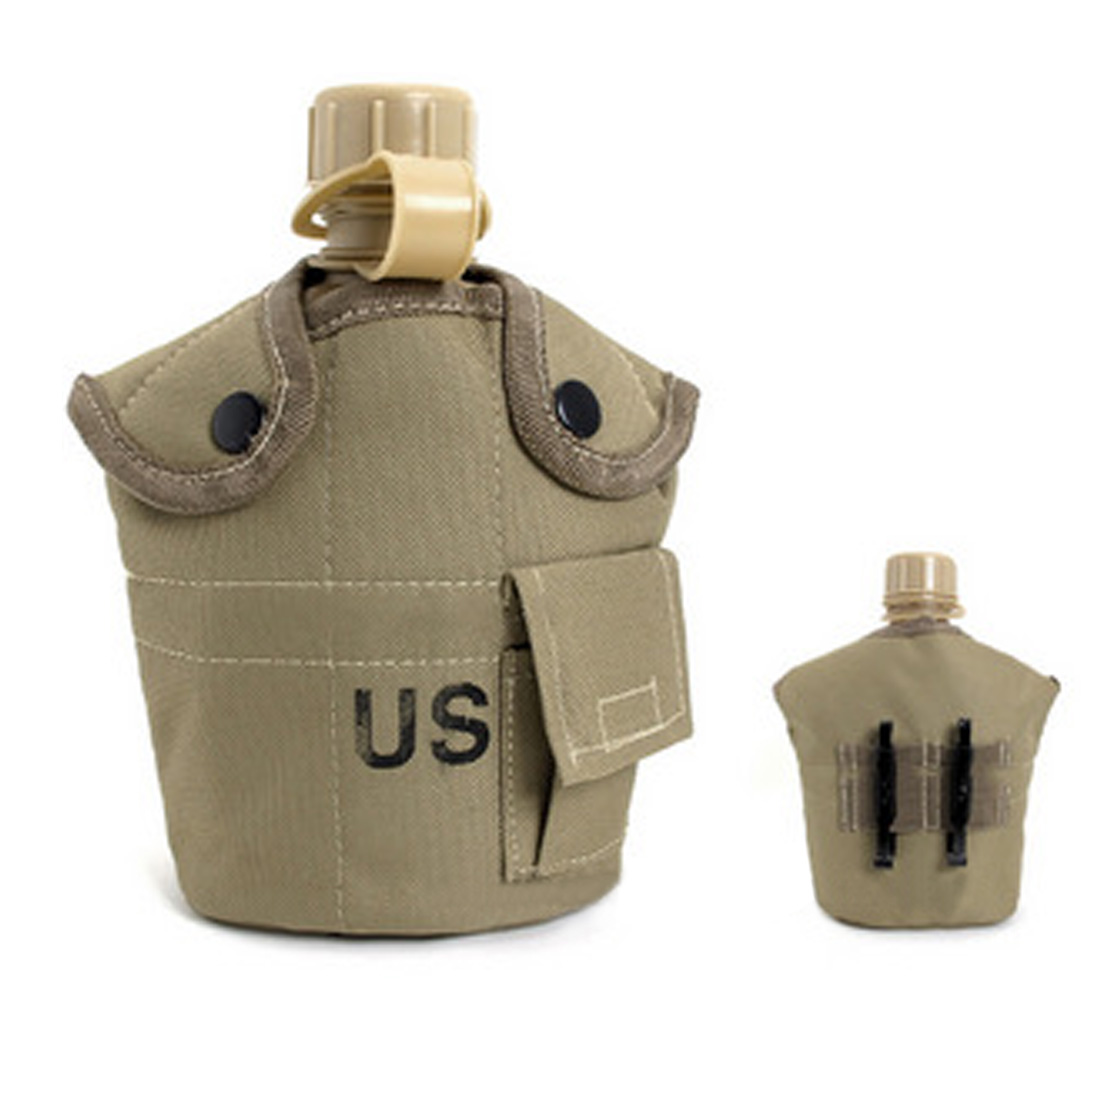 <font><b>New</b></font> Outdoor US Military <font><b>Cup</b></font> <font><b>Aluminum</b></font> Canteen Water Bottle and Nylon Canteen <font><b>Cover</b></font> Hiking Camping Kettle Two Color